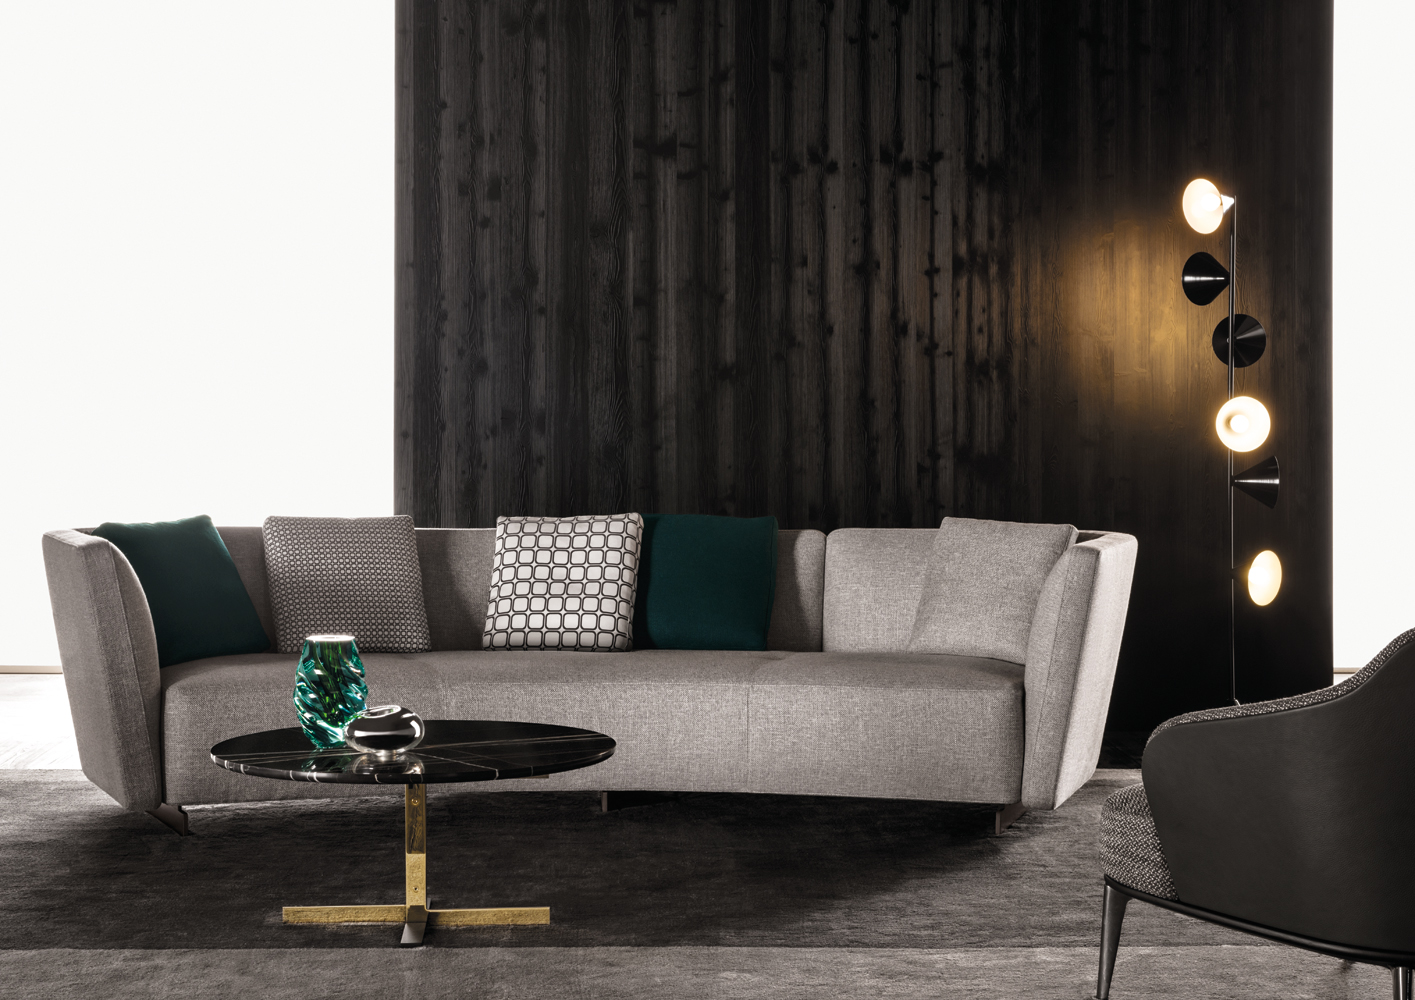 Sofa Fabric Images 20 Modish Minotti Sofas And Seating Systems